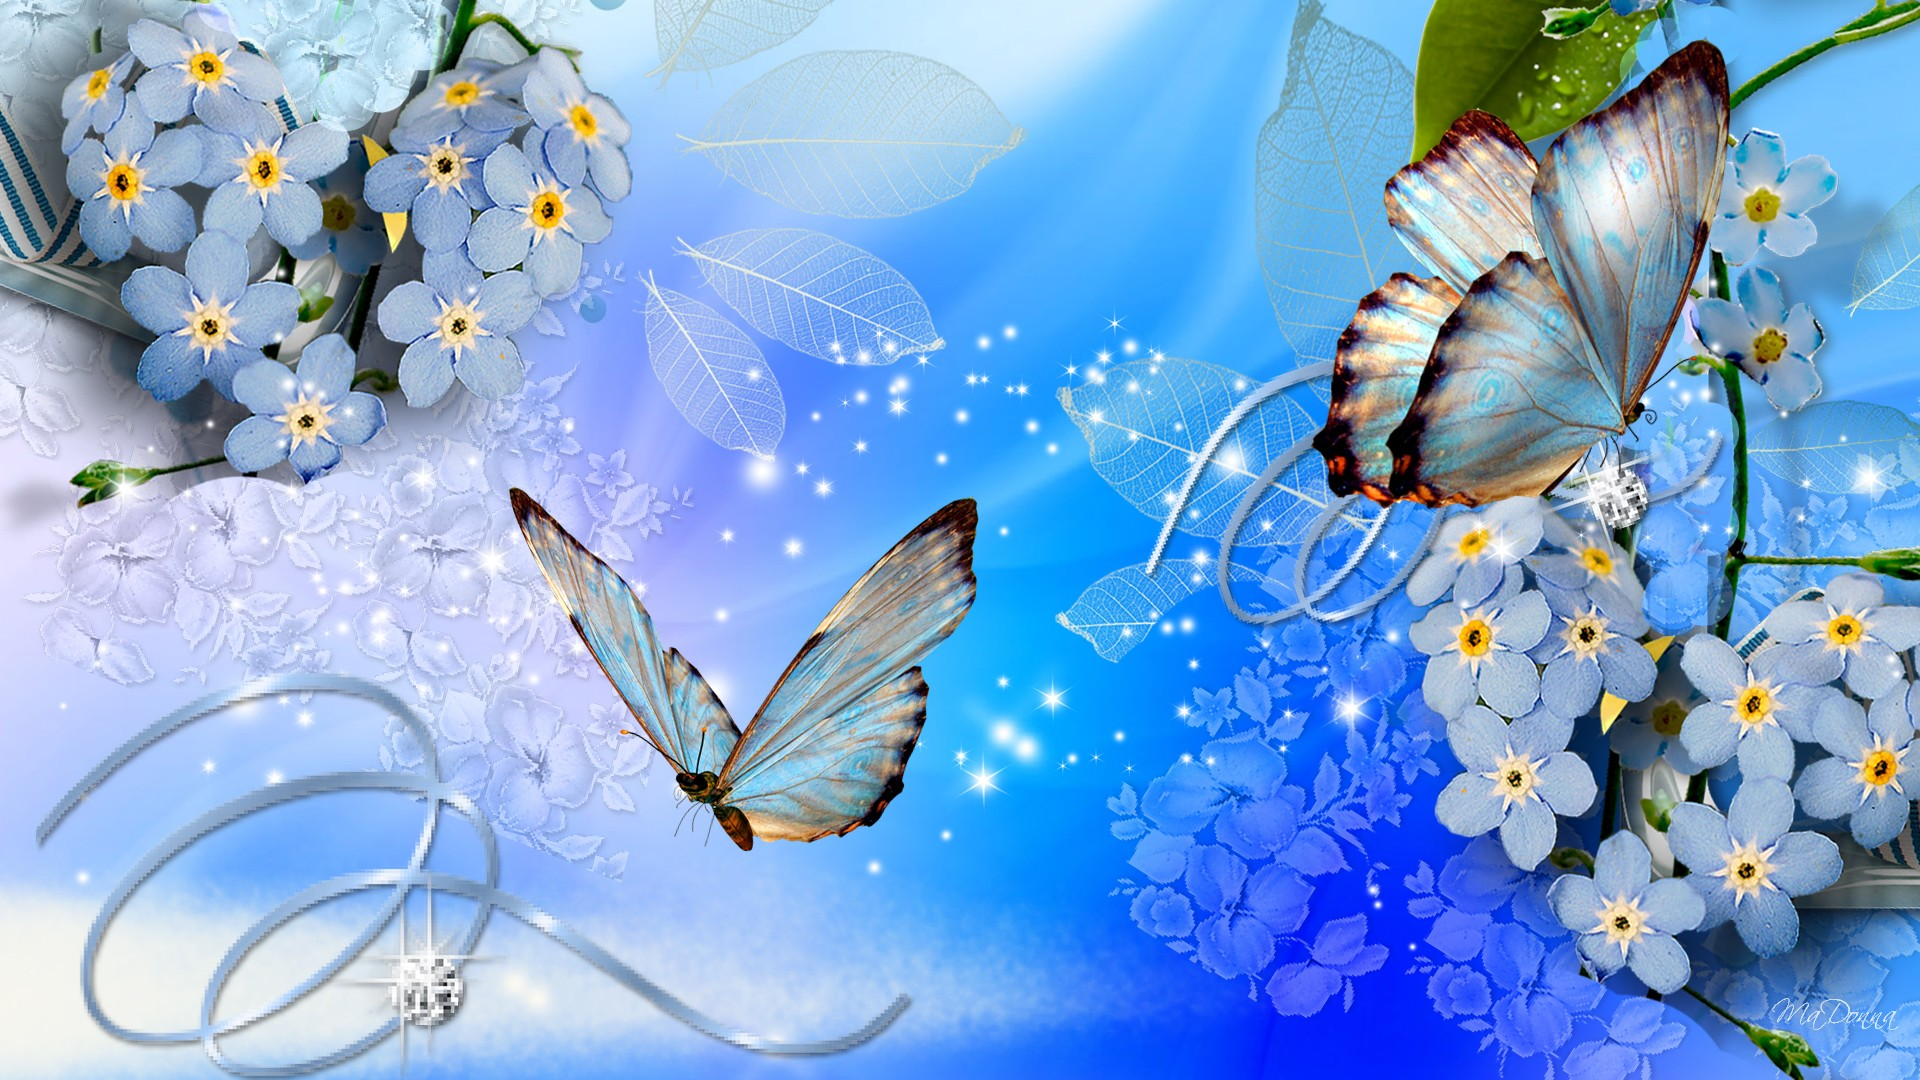 Wallpaper clipart blue flower Wallpapers Blue Search butterfly Google